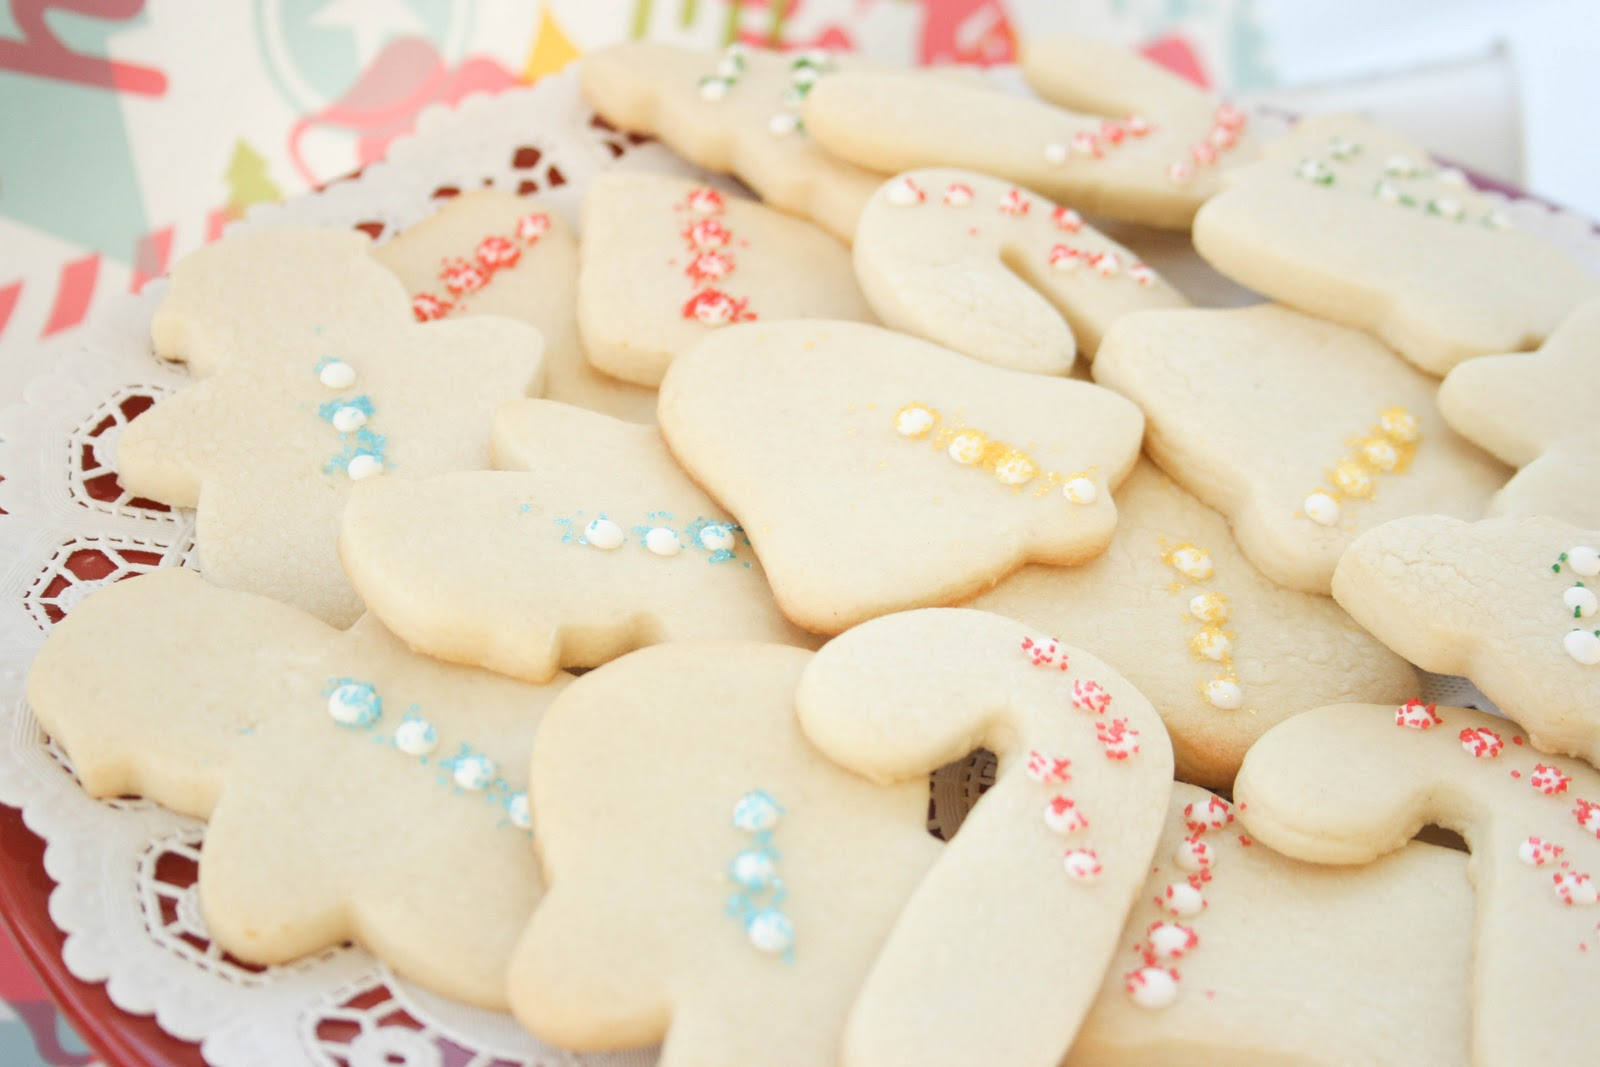 ... from the TV to tell you about these Cut-Out Christmas Sugar Cookies